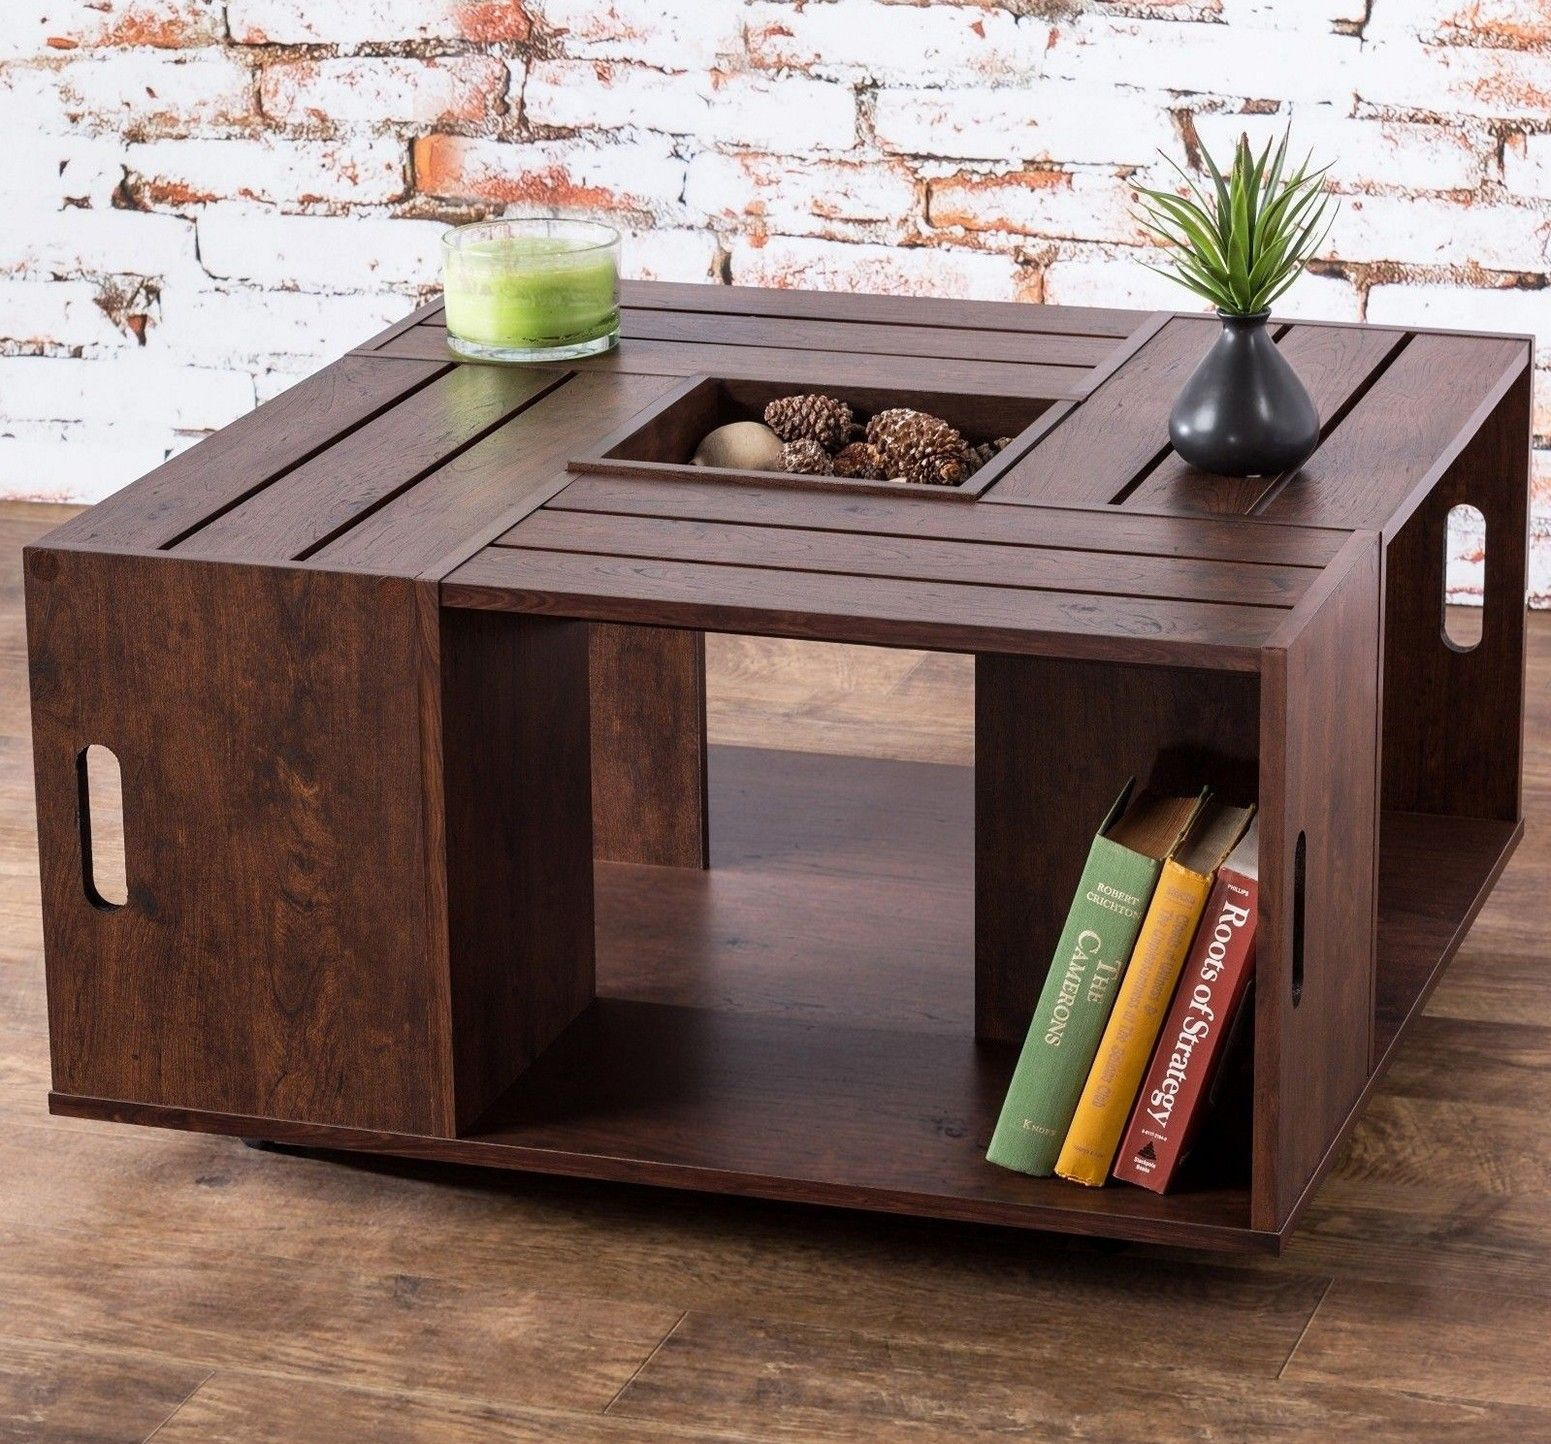 Wine Crate Coffee Table DIY Design